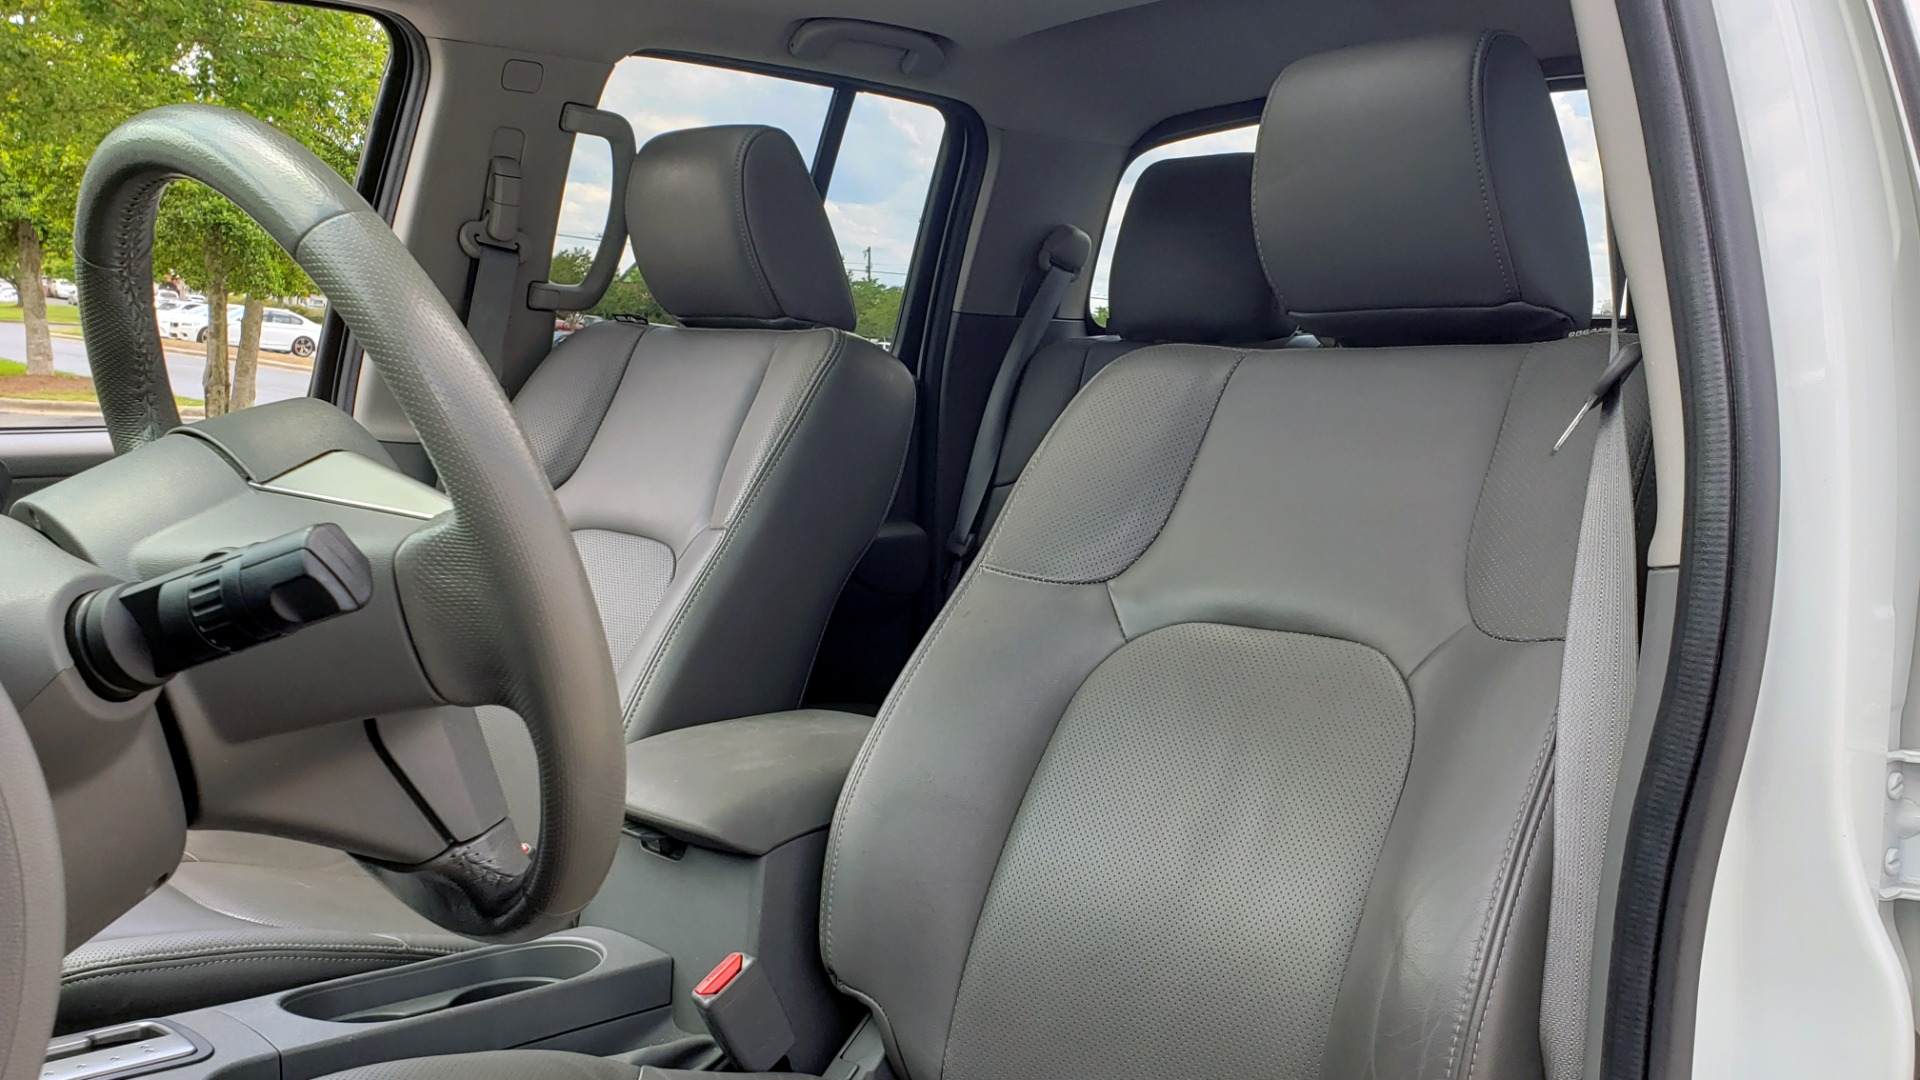 Used 2019 Nissan FRONTIER SL CREW CAB / 4X4 / NAV / SUNROOF / ROCKFORD FOSGATE / LOADED for sale $31,495 at Formula Imports in Charlotte NC 28227 38